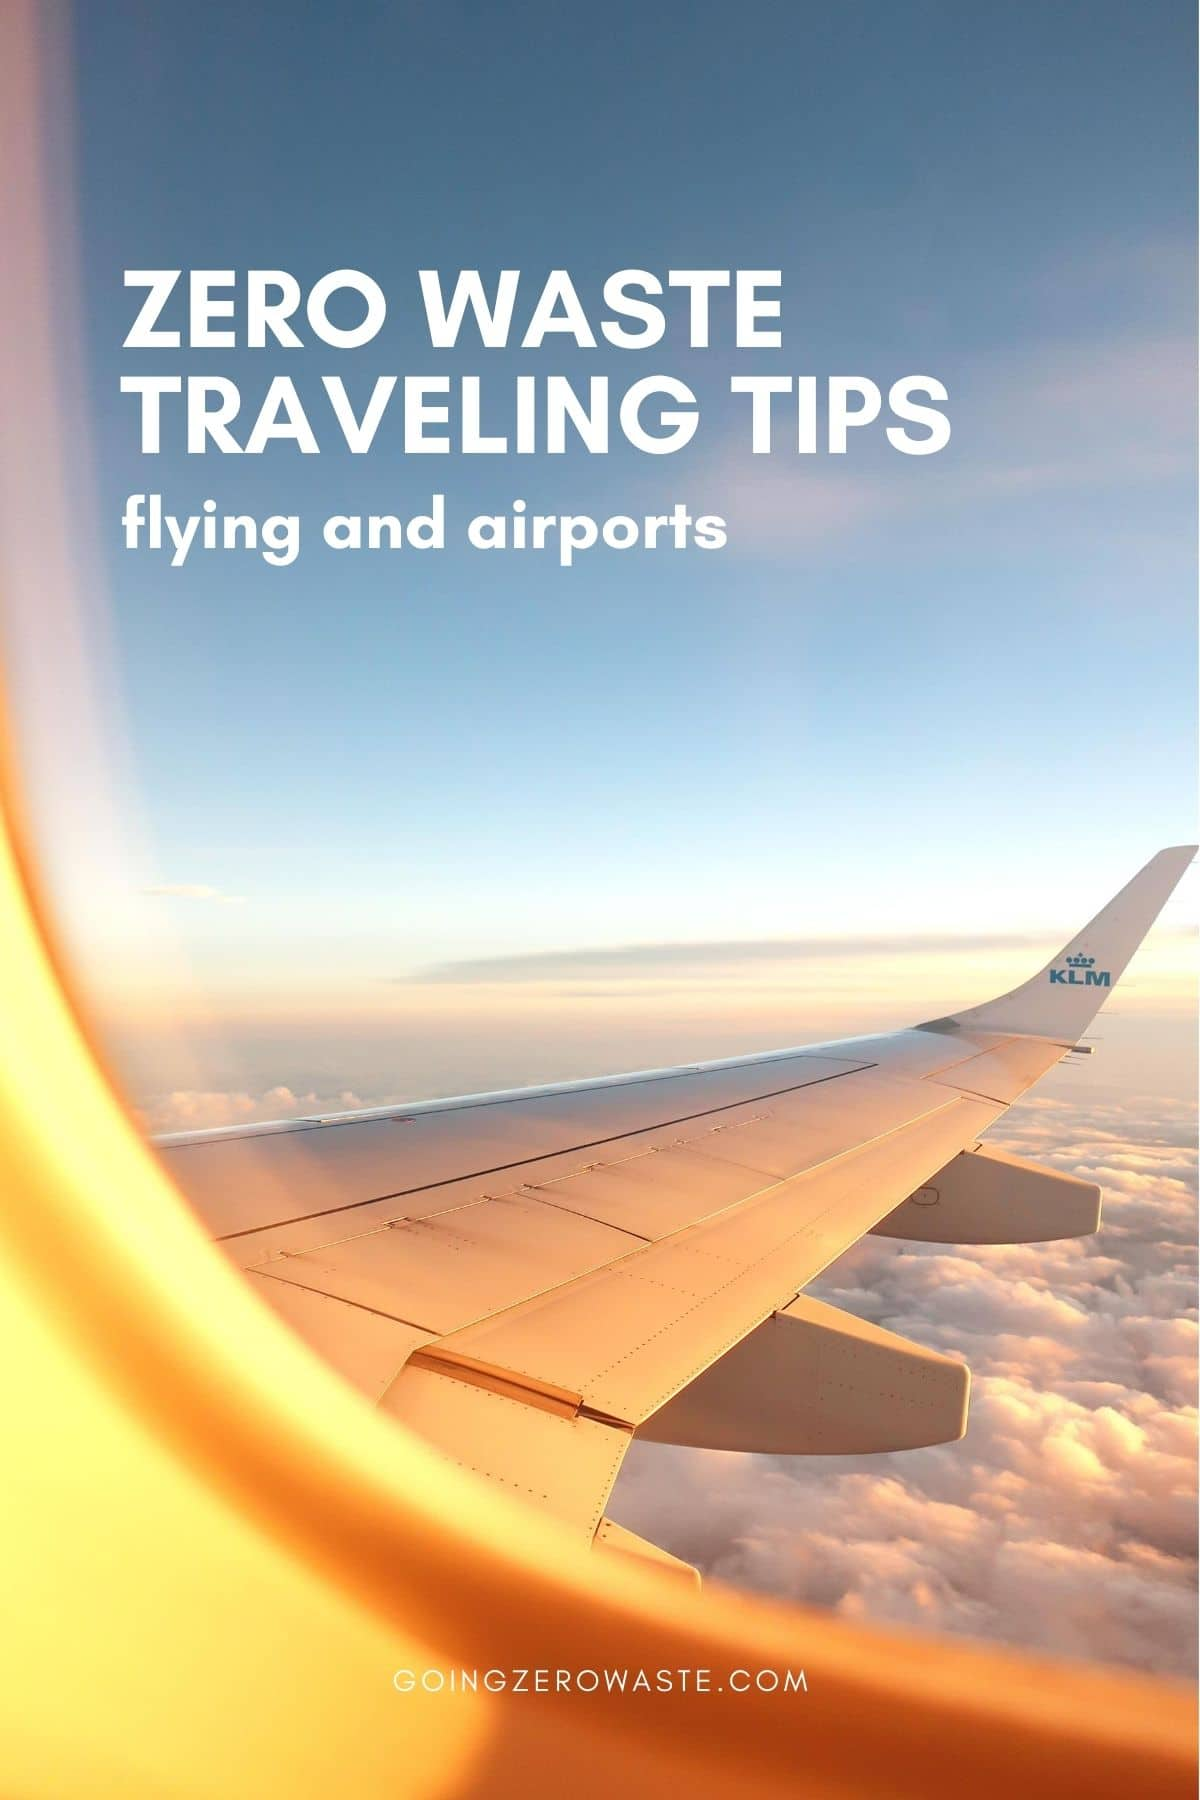 Zero Waste Traveling Tips: Flying and Airports